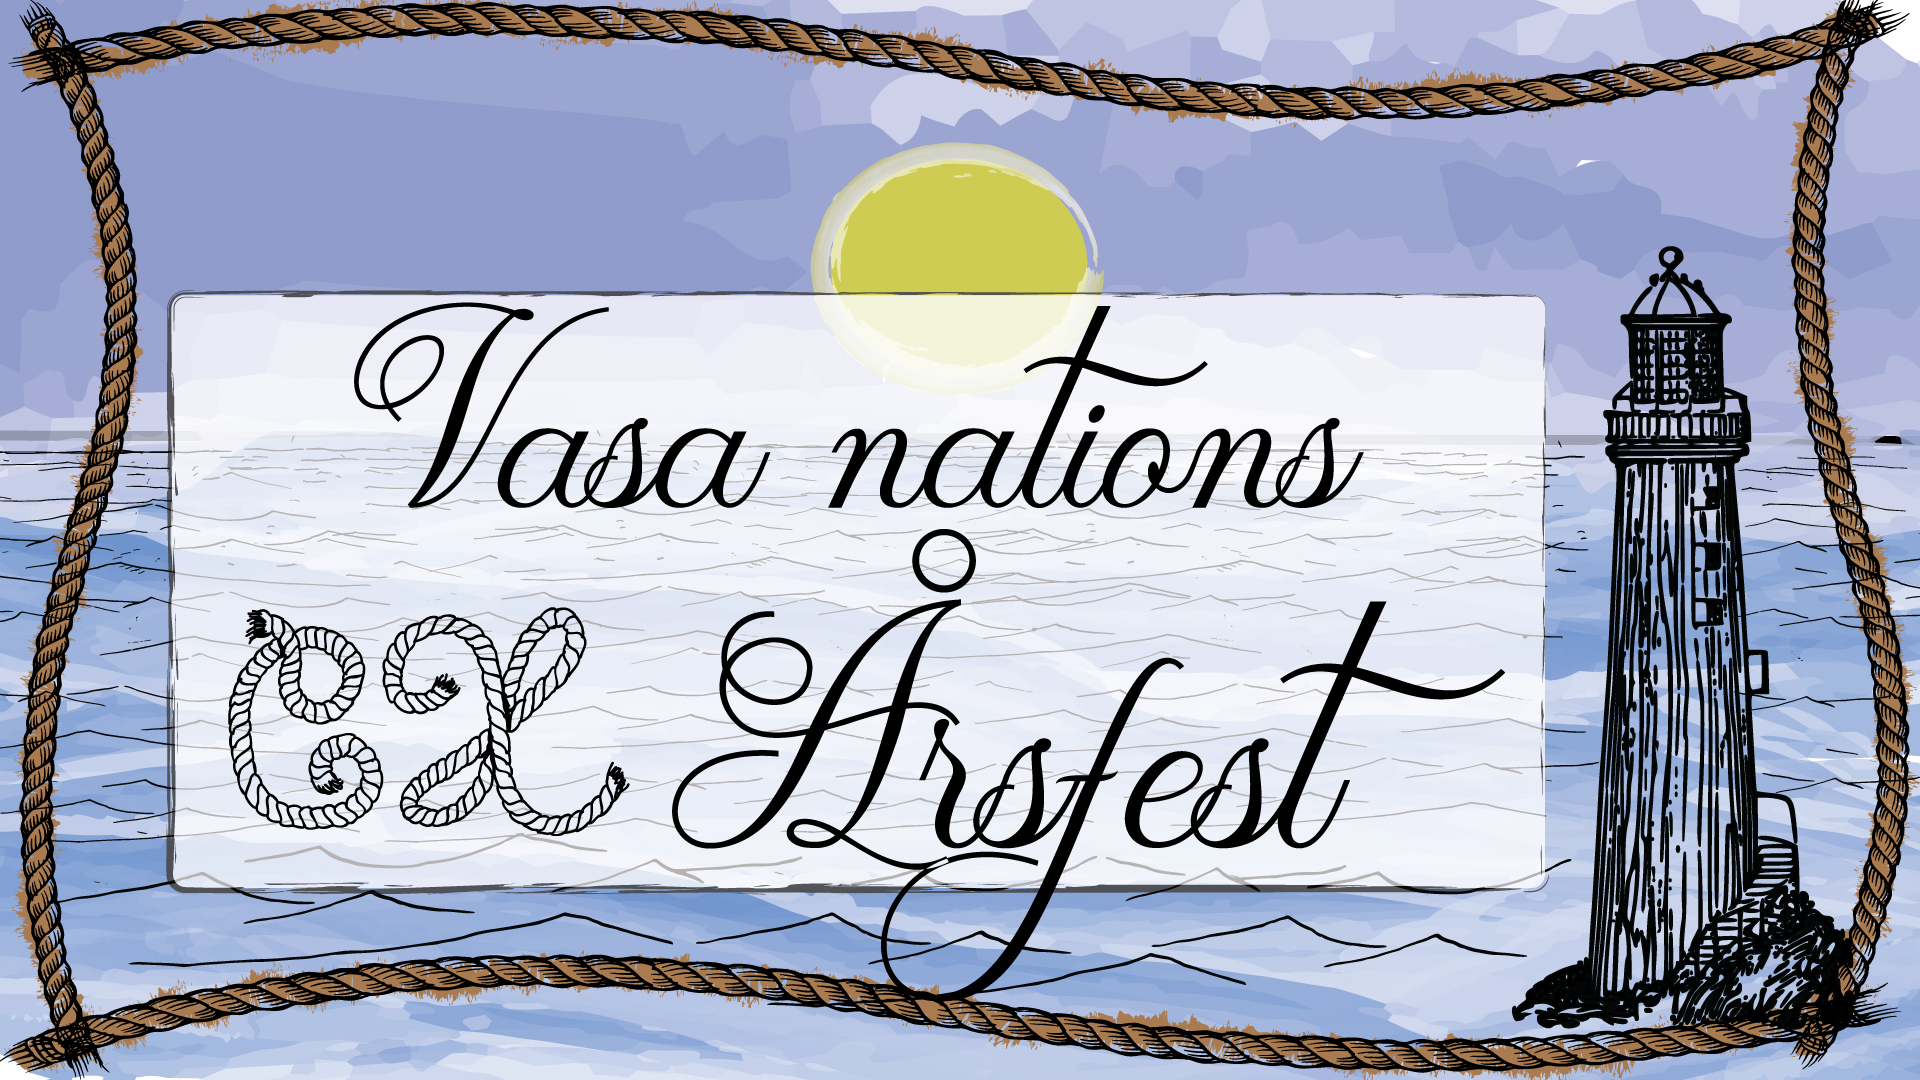 Vasa nations CX årsfest